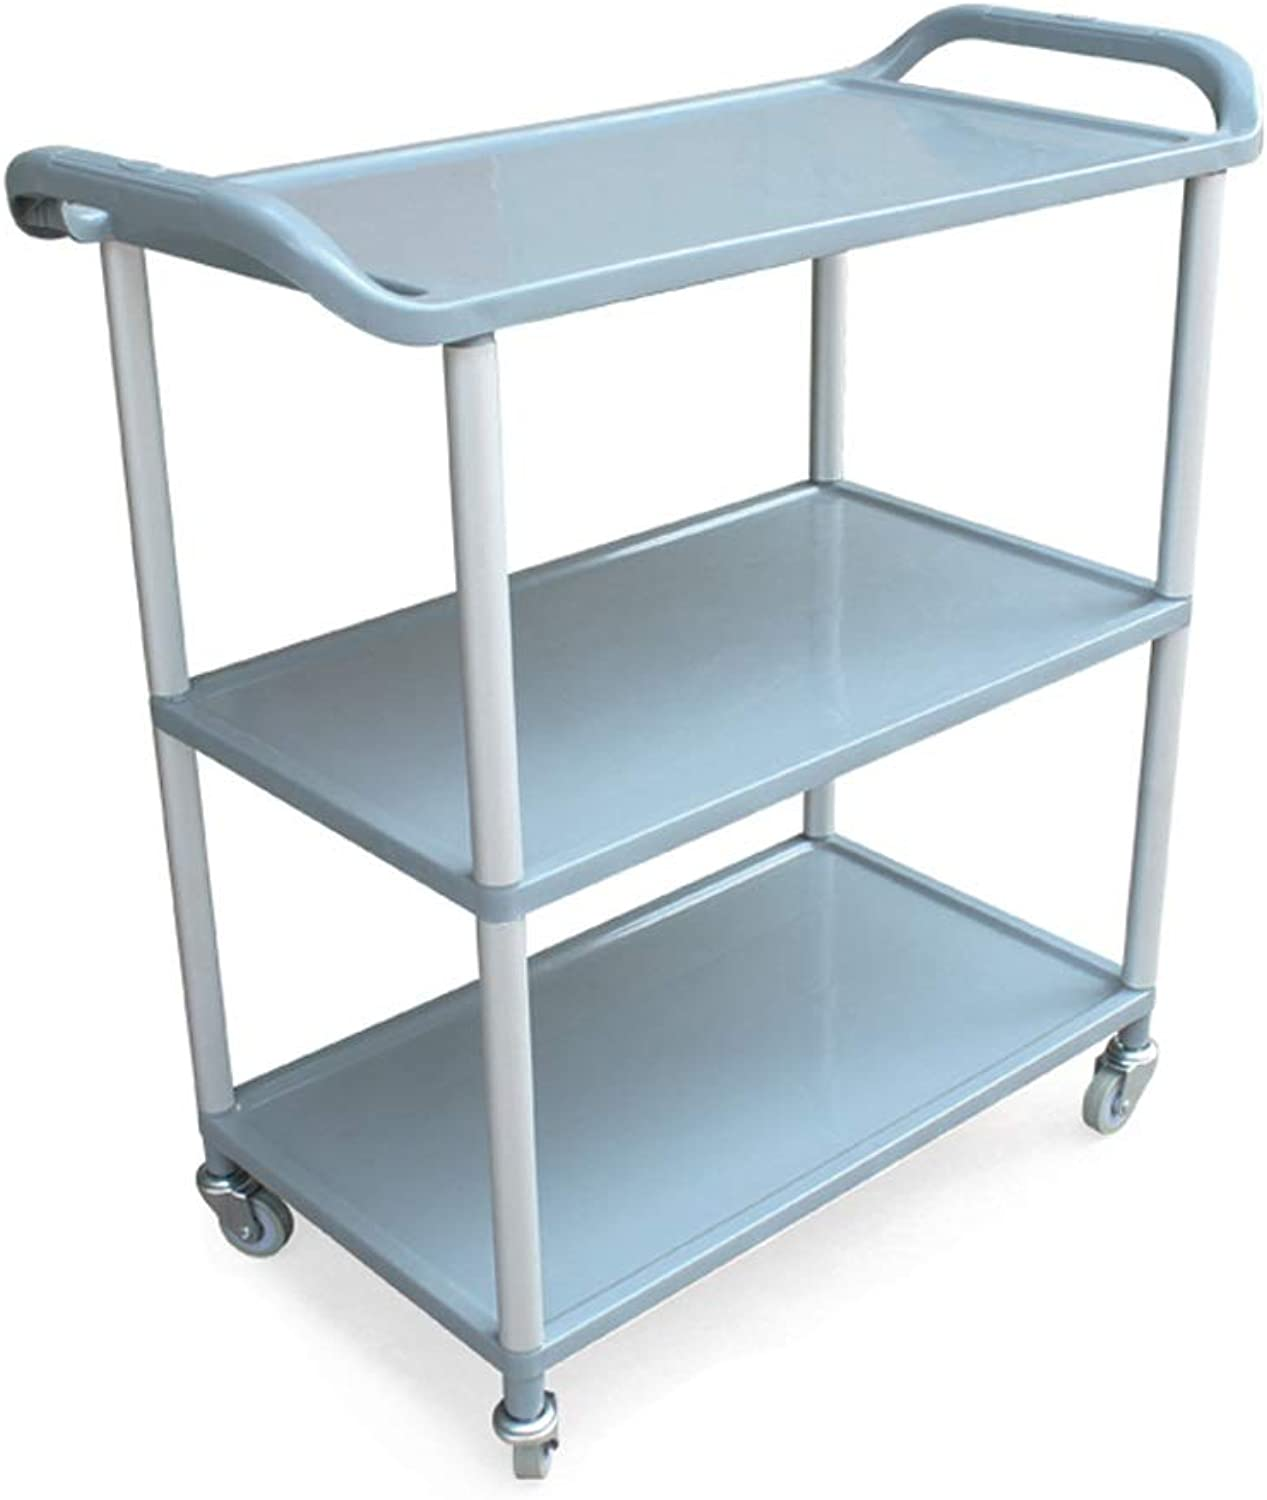 Restaurant Trolley, Plastic Dining Car Restaurant Bowl Collection Station Vegetable Seasoning Shelf, 3 Layers, with Universal Pulley, (LxWxH) 58.8x34.5x74.7cm